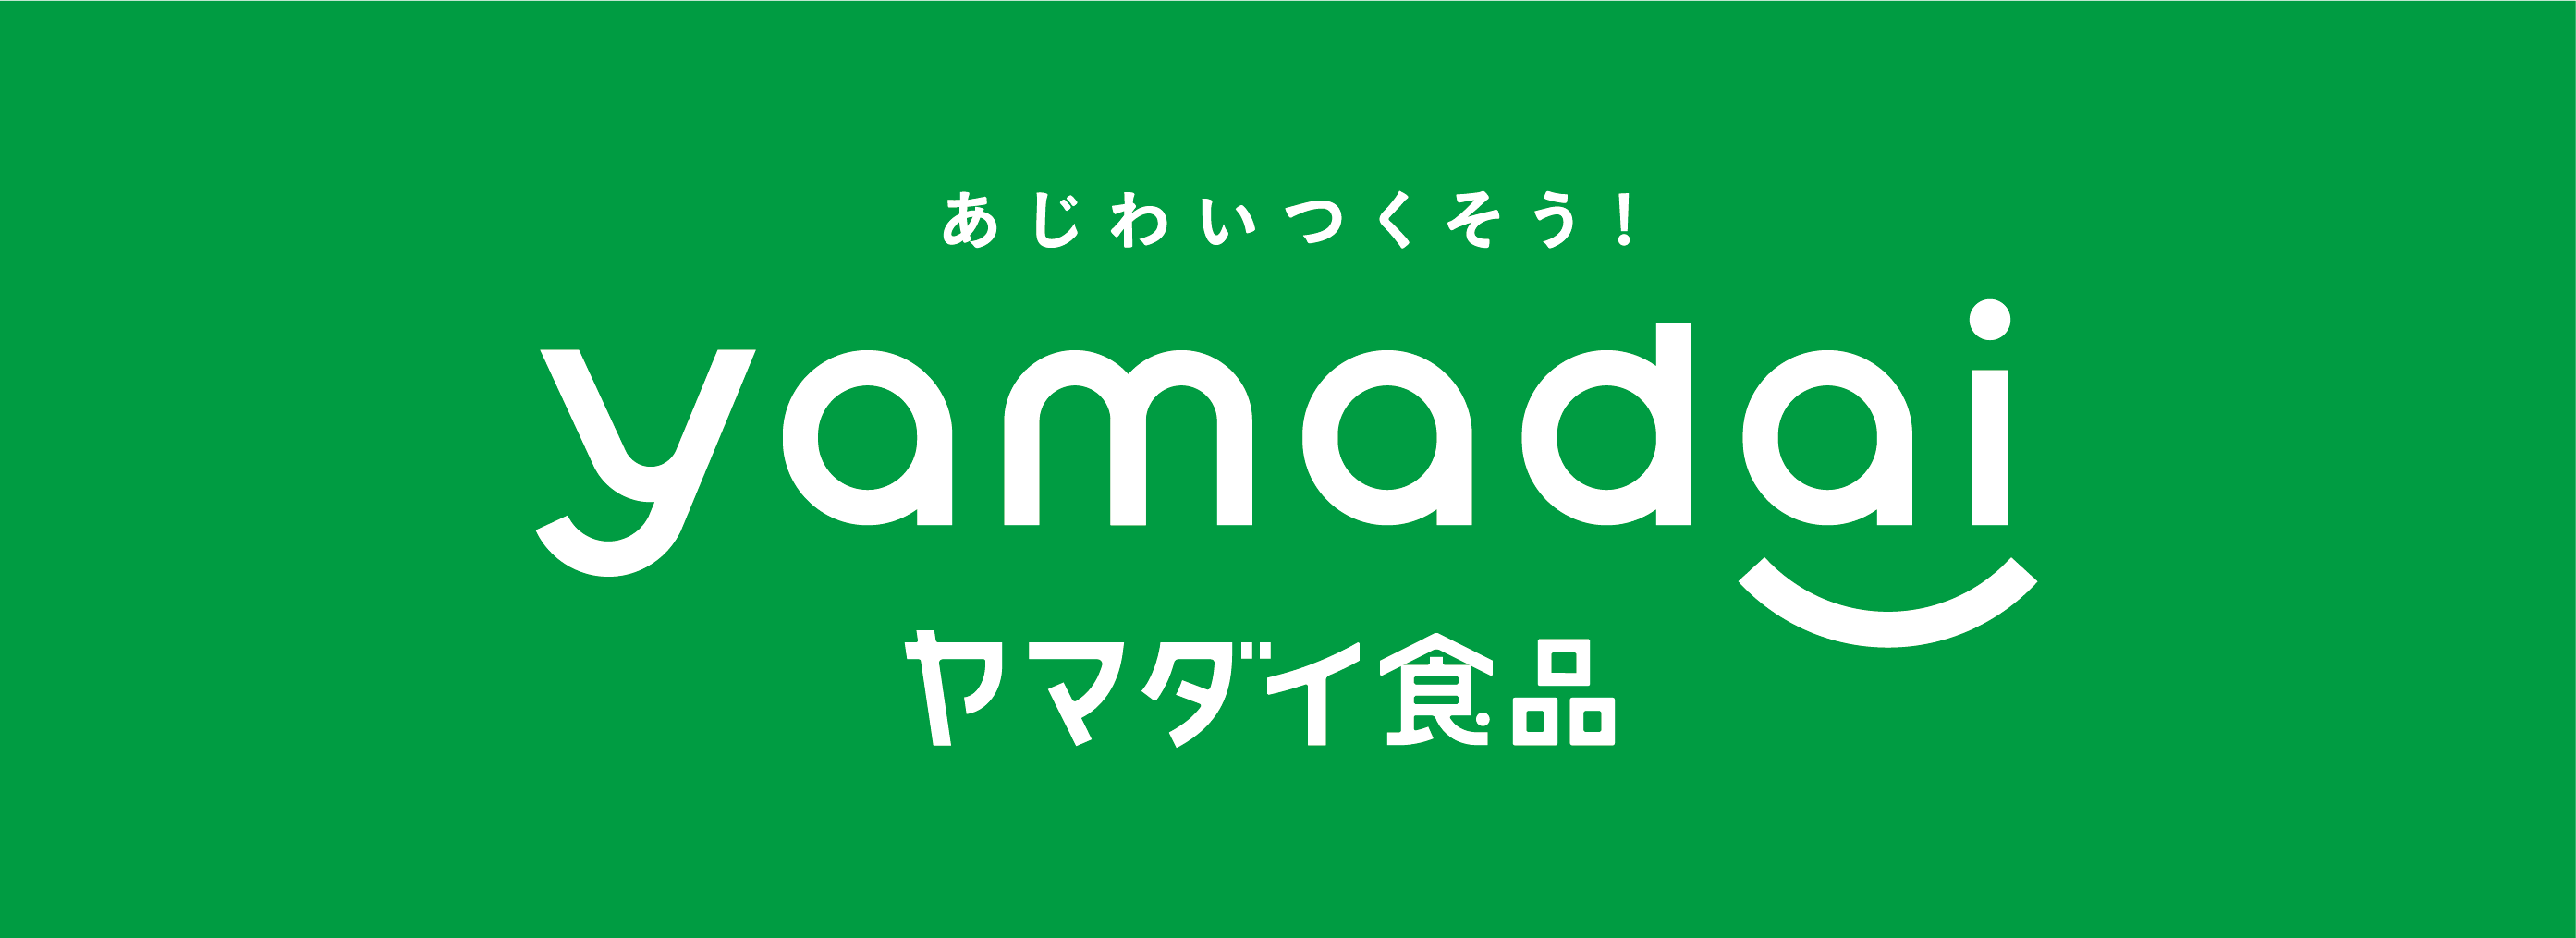 YAMADAI FOOD CORPORATION | It is a cooked frozen side dish manufacturer that uses no preservatives or colorings.